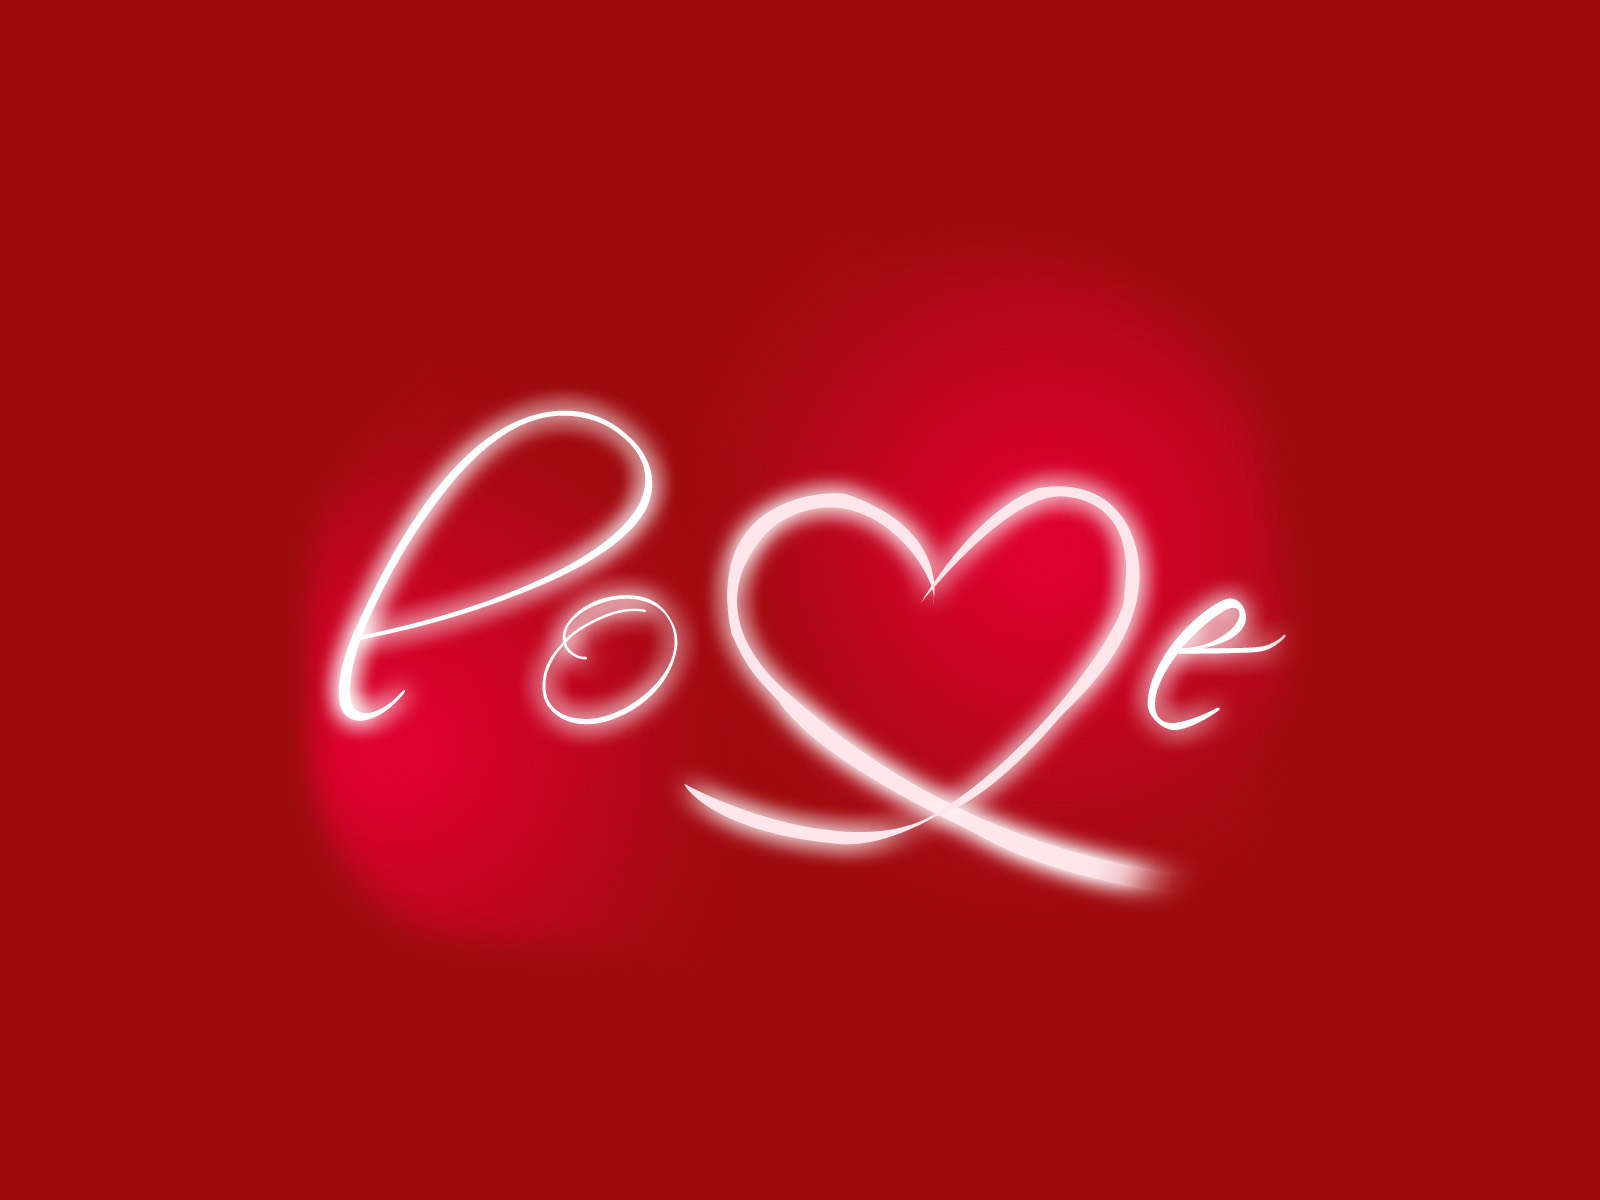 Love Images Download For Desktop 5 HD Wallpapers